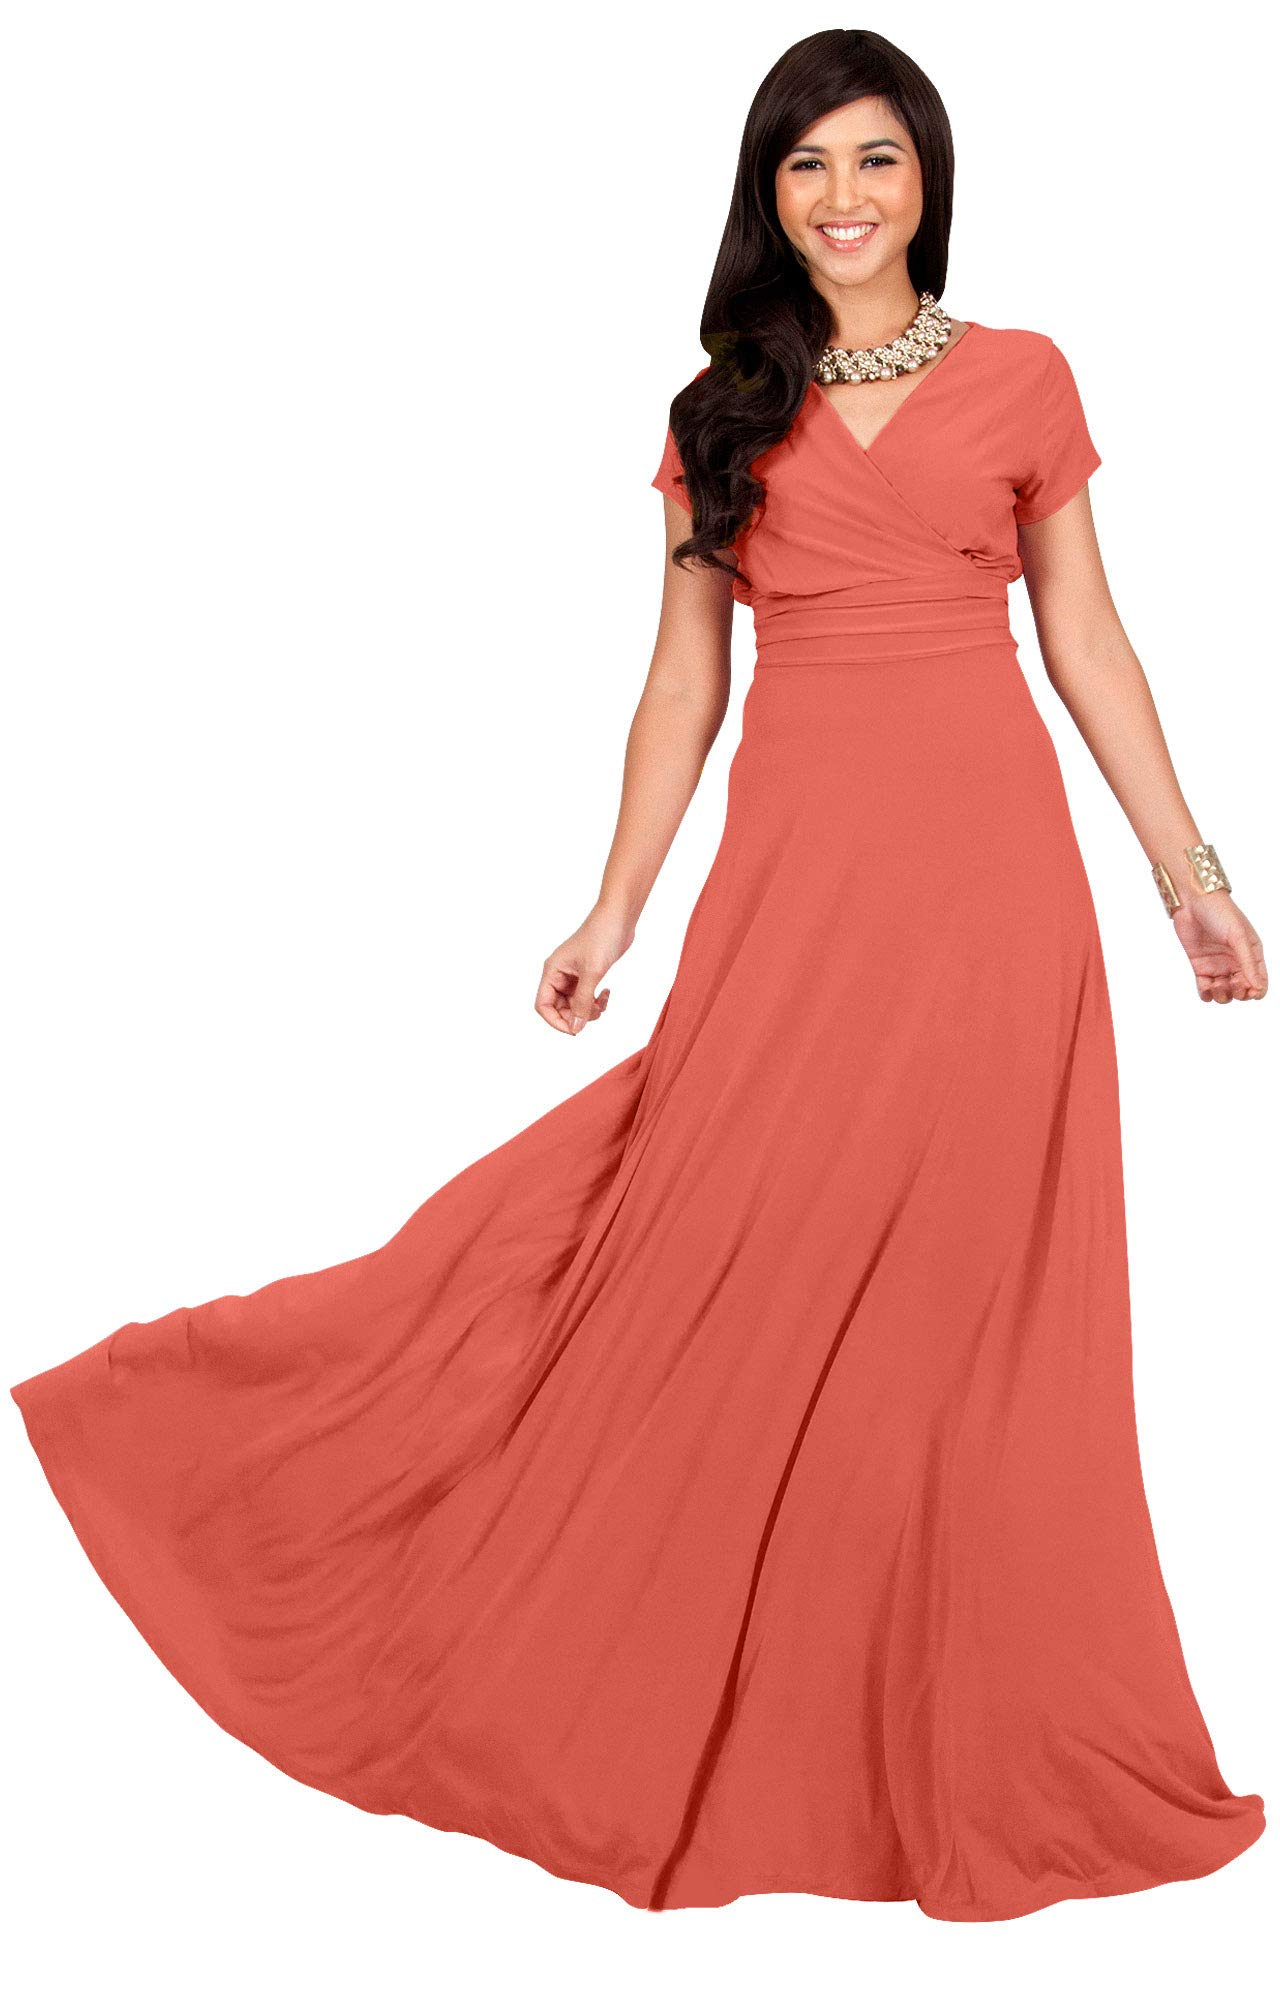 60f10ea627c KOH KOH Plus Size Womens Long Cap Short Sleeve V-Neck Flowy Cocktail  Slimming Summer Sexy Casual Formal Sun Sundress Work Cute Gown Gowns Maxi Dress  Dresses ...